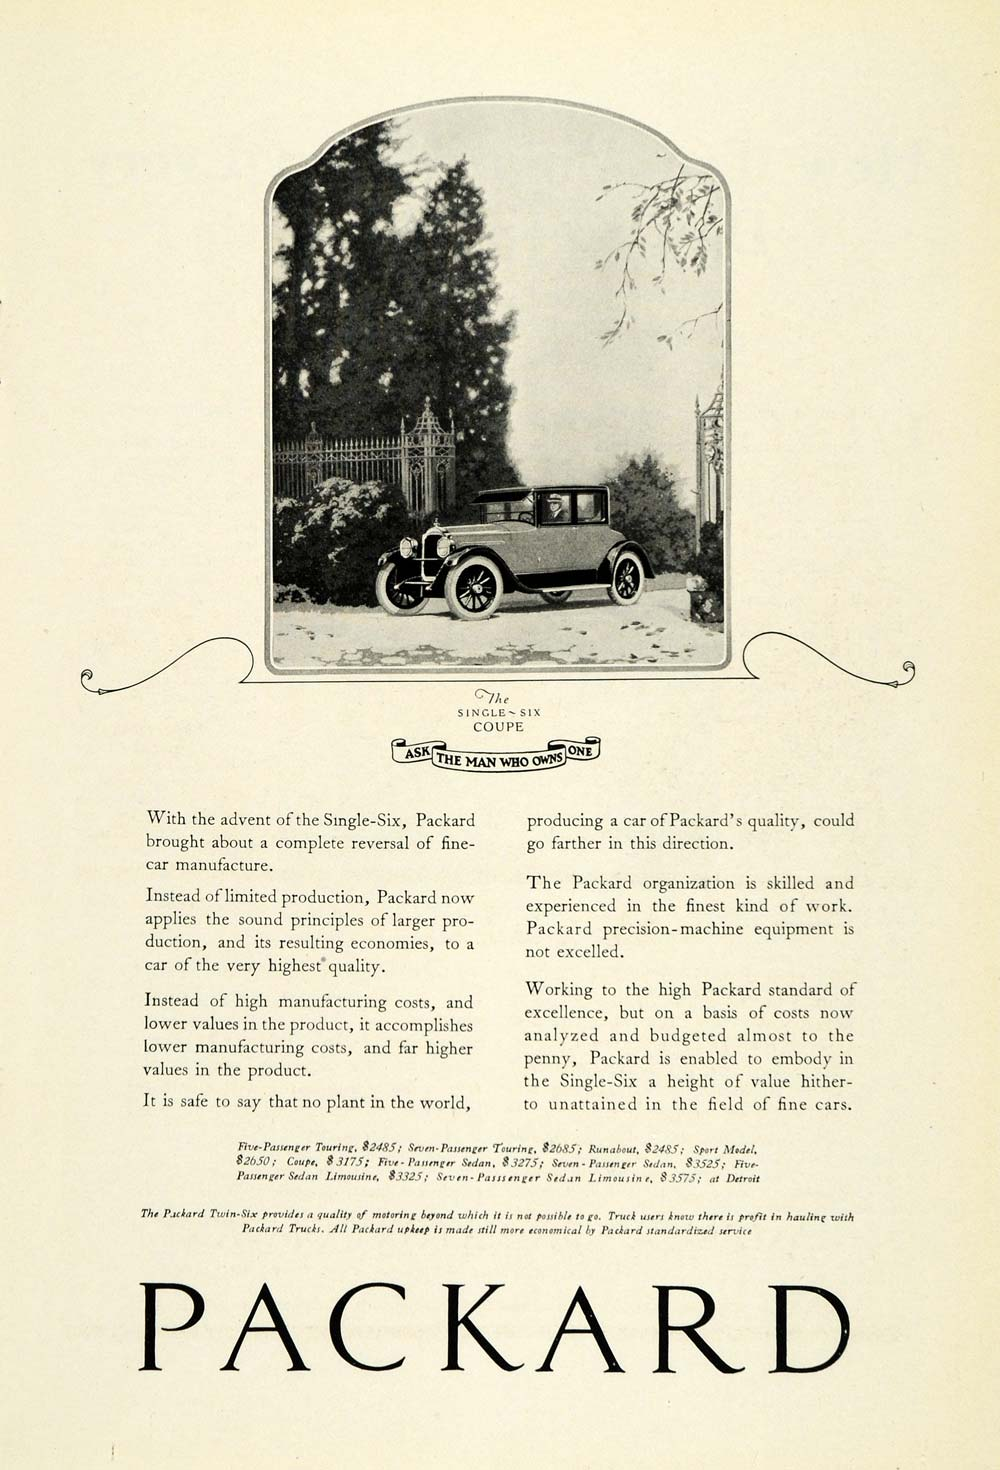 Packard Period Paper Wiring Diagrams Of 1958 Studebaker And Golden Hawk 1922 Ad Single Six Coupe Automobile Vintage Motor Vehicle Detroit Ngm1